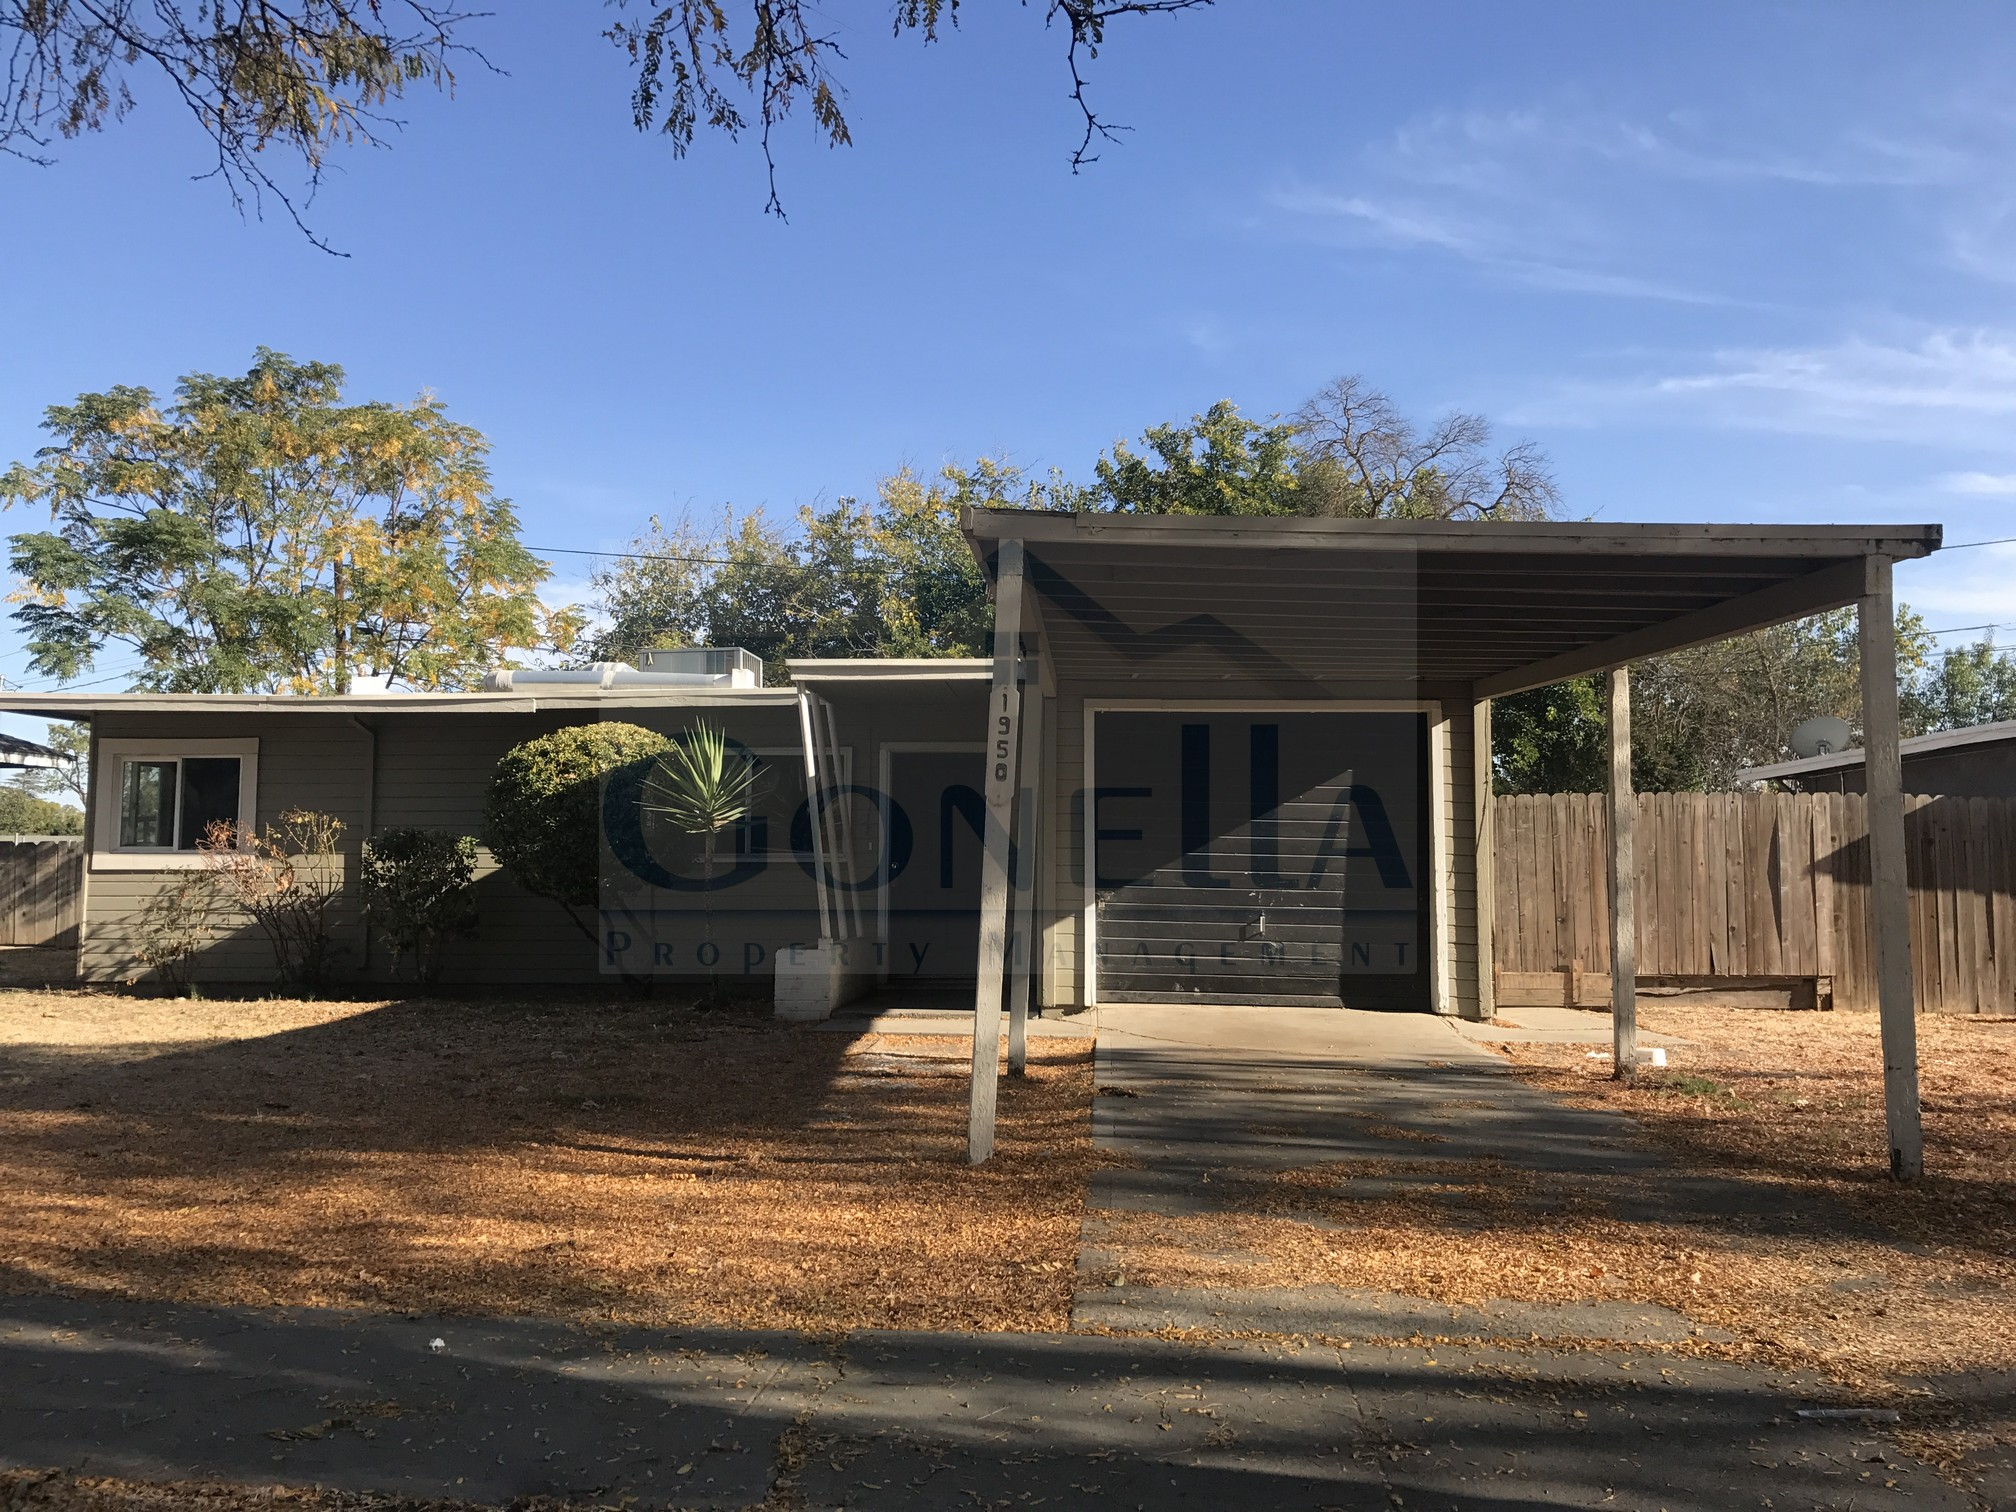 Rent $1100 Deposit $1100  1950 Glen ( W Olive Ave, Right on G St, Left on E 21st, Right on Glen) 907 Sq ft, living room with fireplace, kitchen, landscaped front and back, , laundry hook ups, Car port, landscaped front and back. No pets!   To obtain a credit application, click on APPLICATION Tab Above.  Credit Check required = $20 processing fee per applicant (Payable by cashiers' check or money order) All tenants are required to obtain renters insurance of at least 50K prior to signing lease. FOR MORE INFORMATION   CALL GONELLA PROPERTY MANAGEMENT AT (209)383-6277!  Gonella Realty Inc. DBA Gonella Property Management CalBRE#01103054